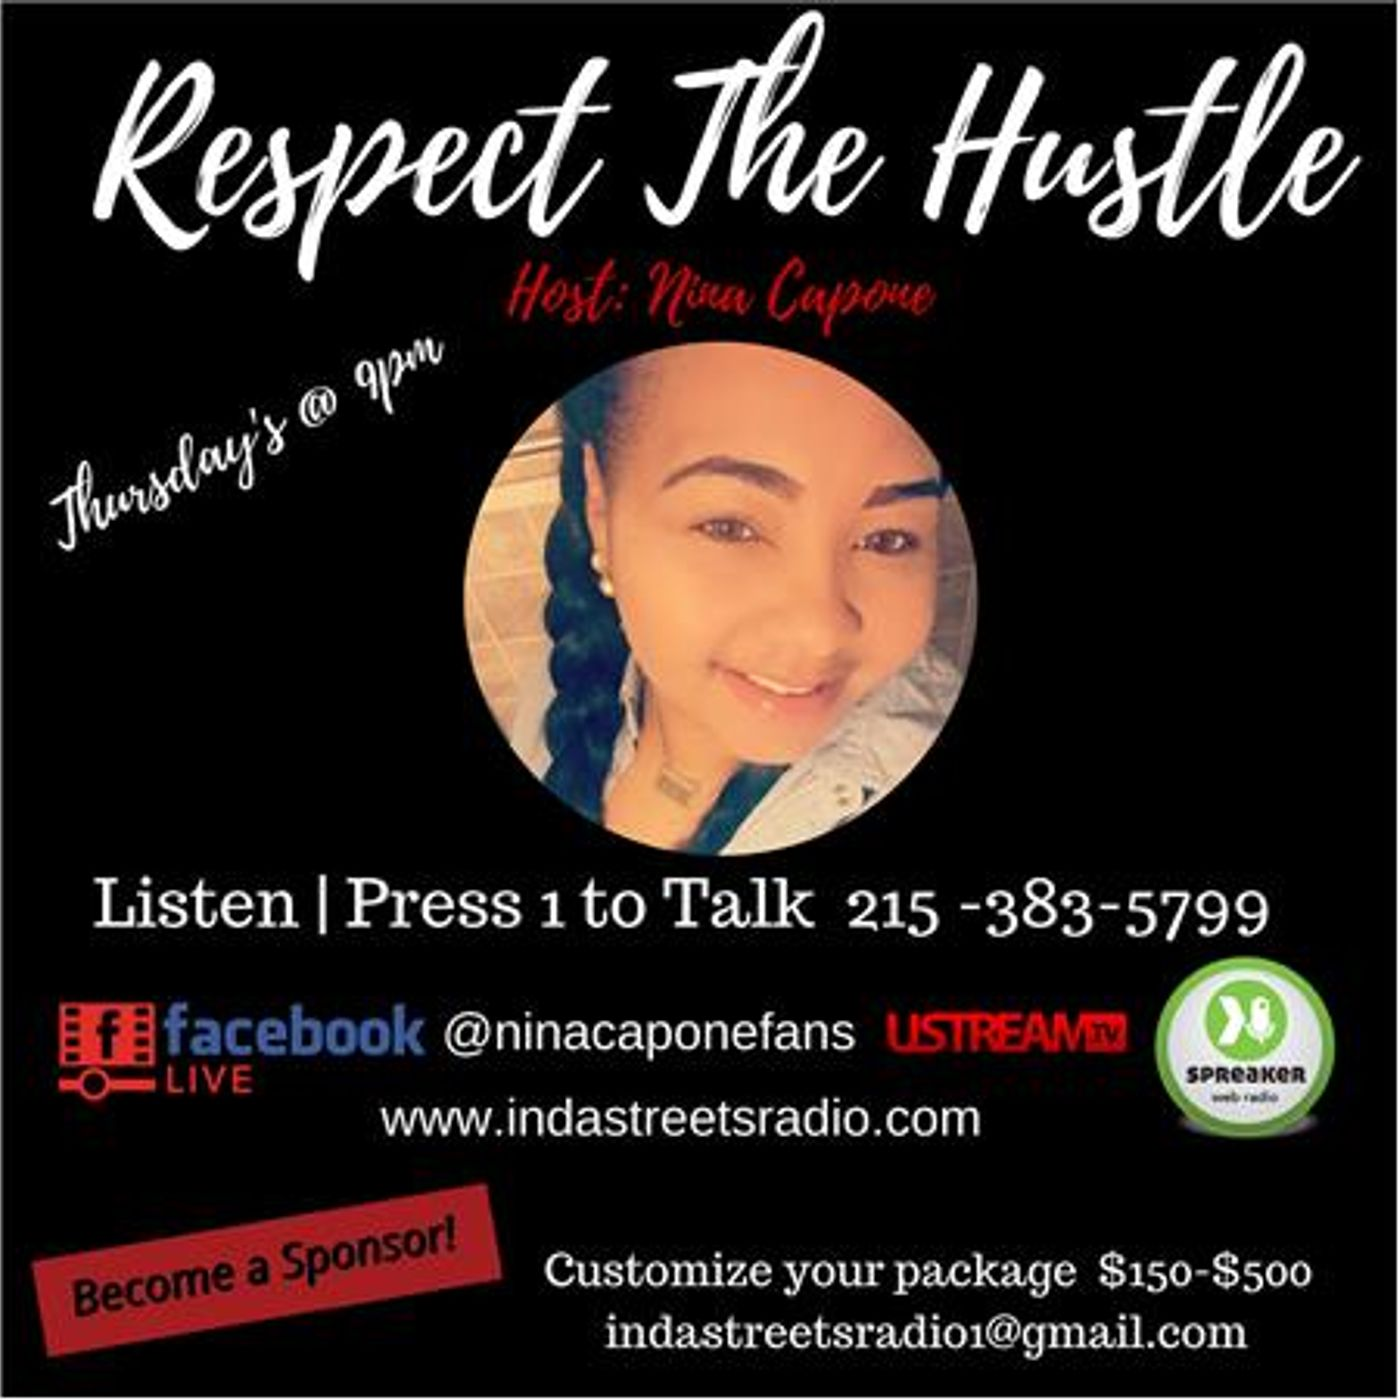 Respect the Hustle is Bizack! Live with Nina Capone